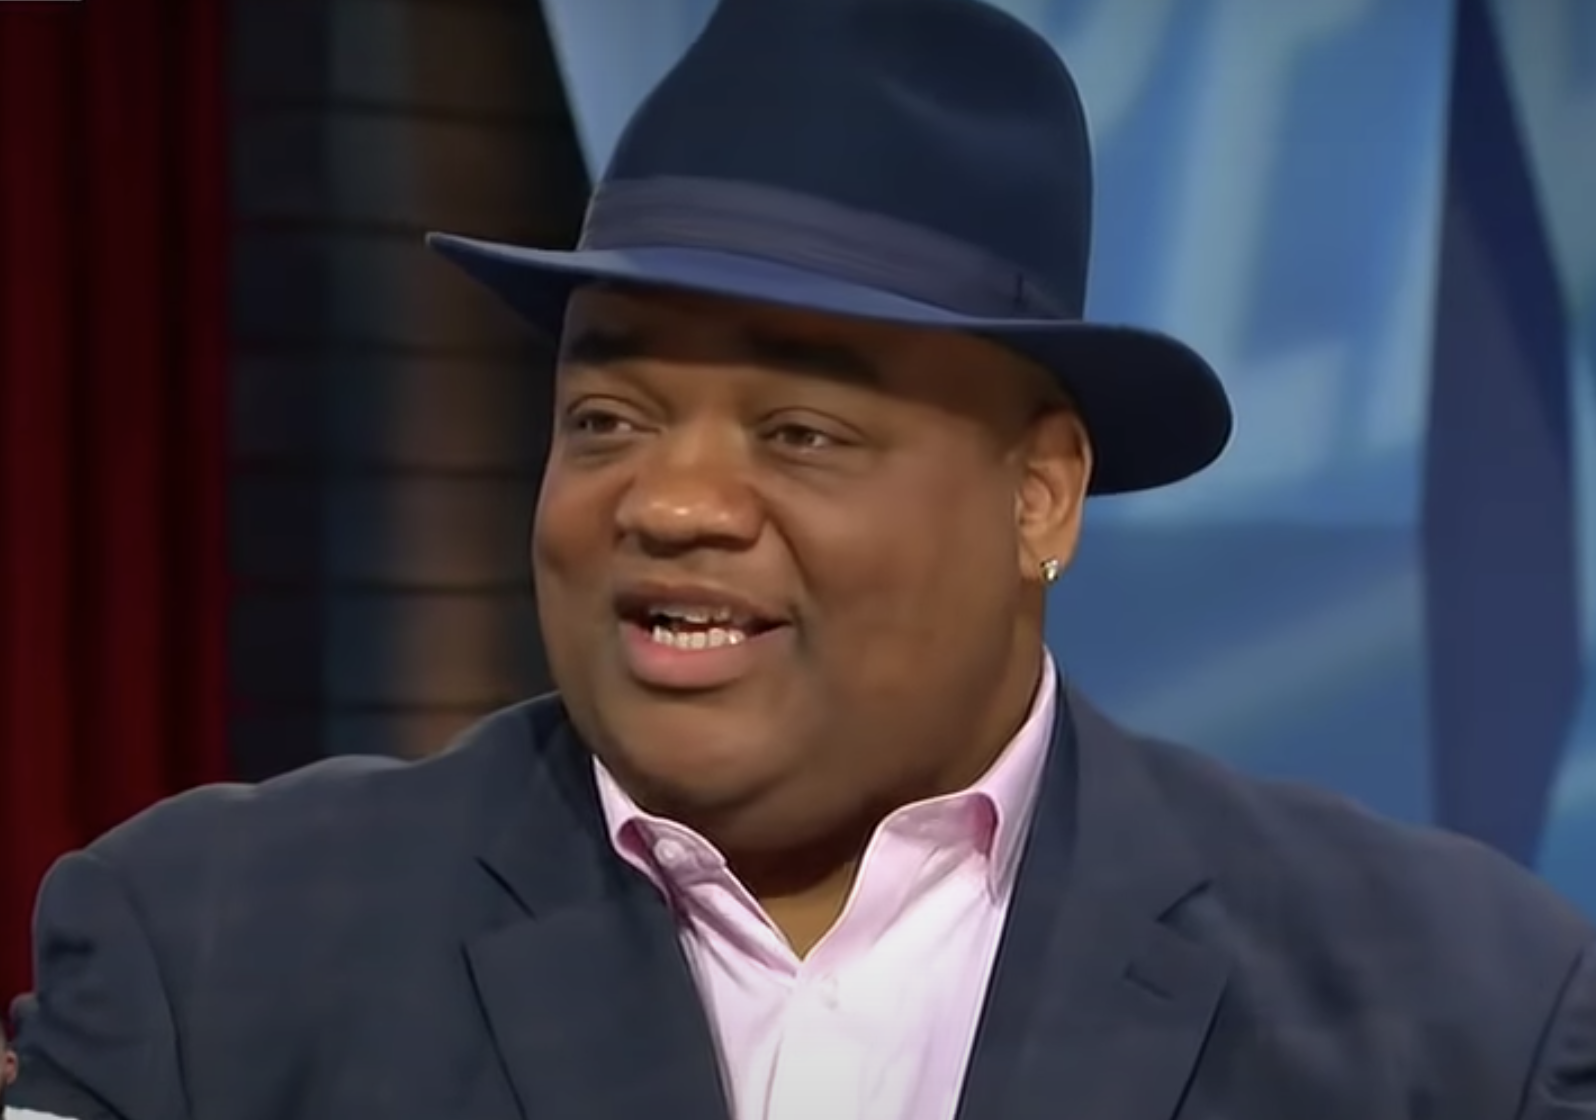 Jason Whitlock weighs in